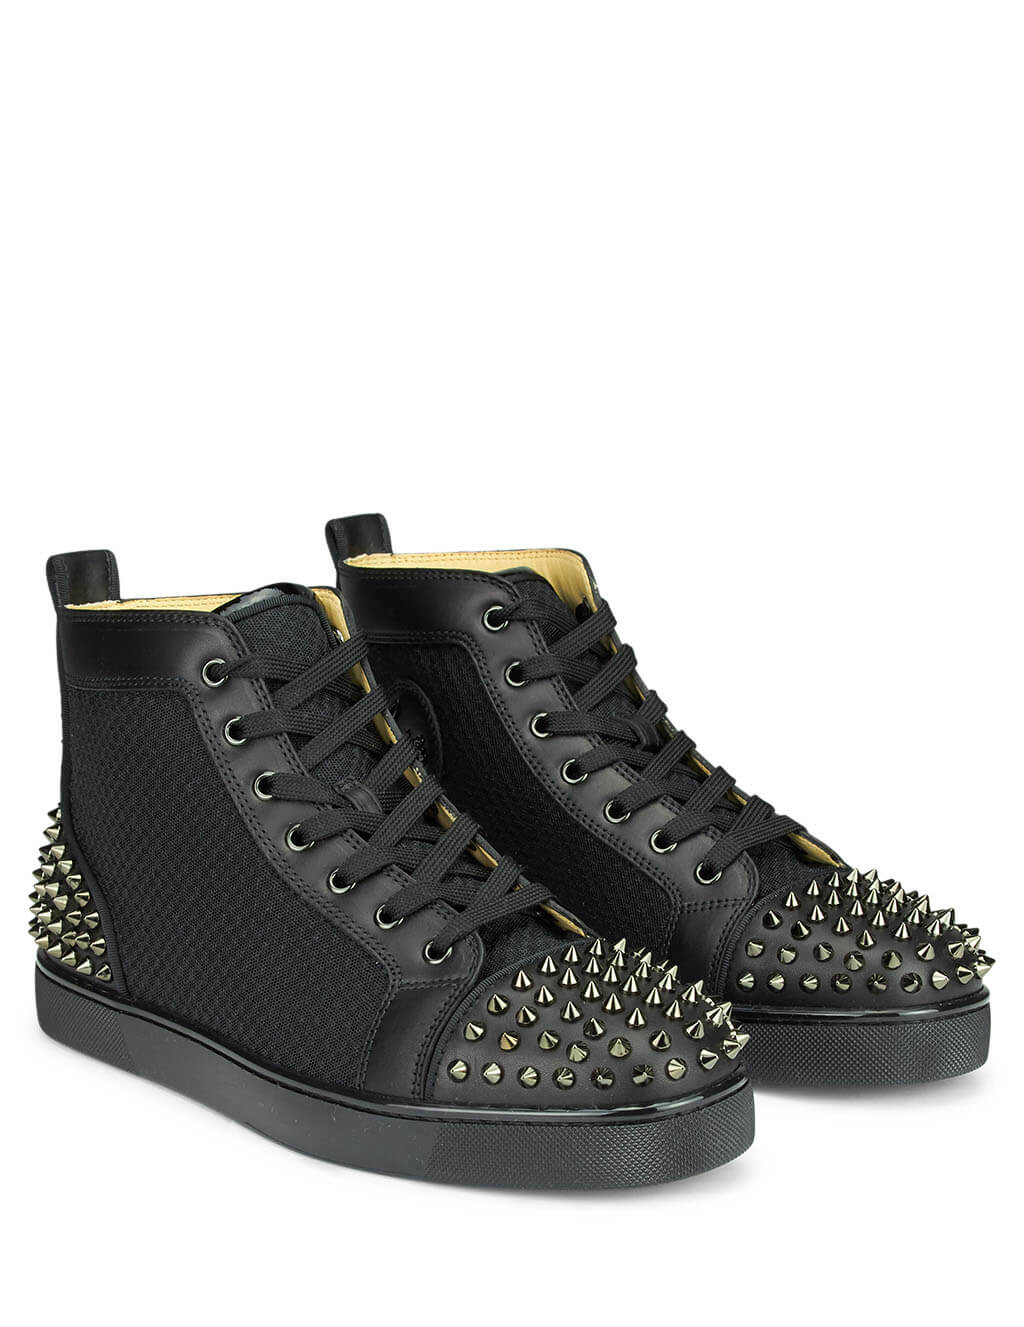 size 40 4be4c 210a5 Christian Louboutin Black AC Lou Spikes 2 Sneakers ...